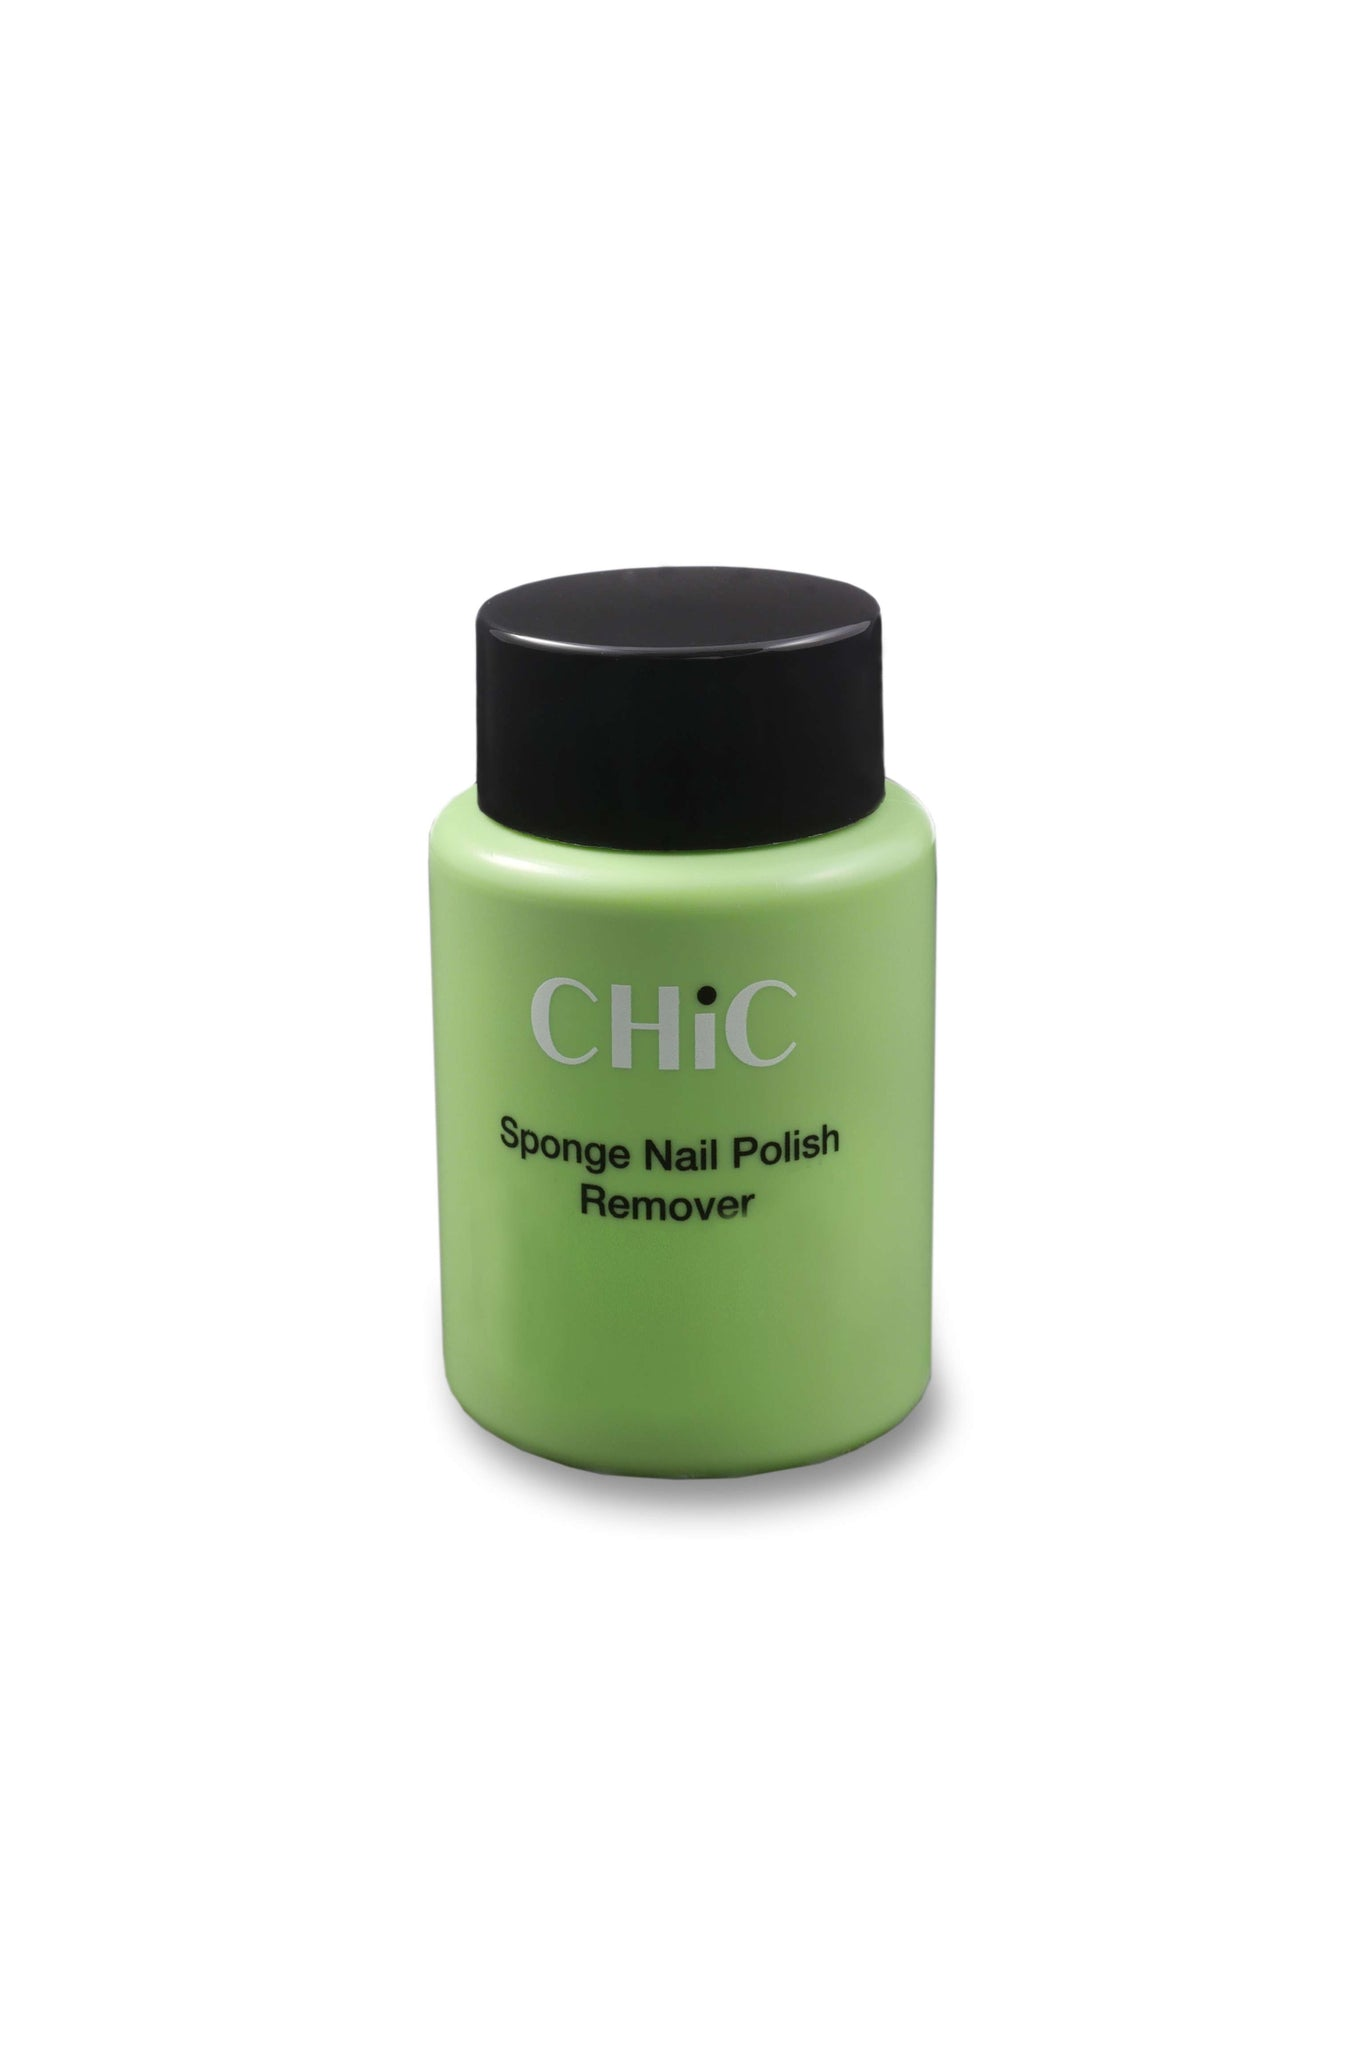 Chic Africa - Nail Polish Remover  Dip, Twist & Wipe Pure Acetone